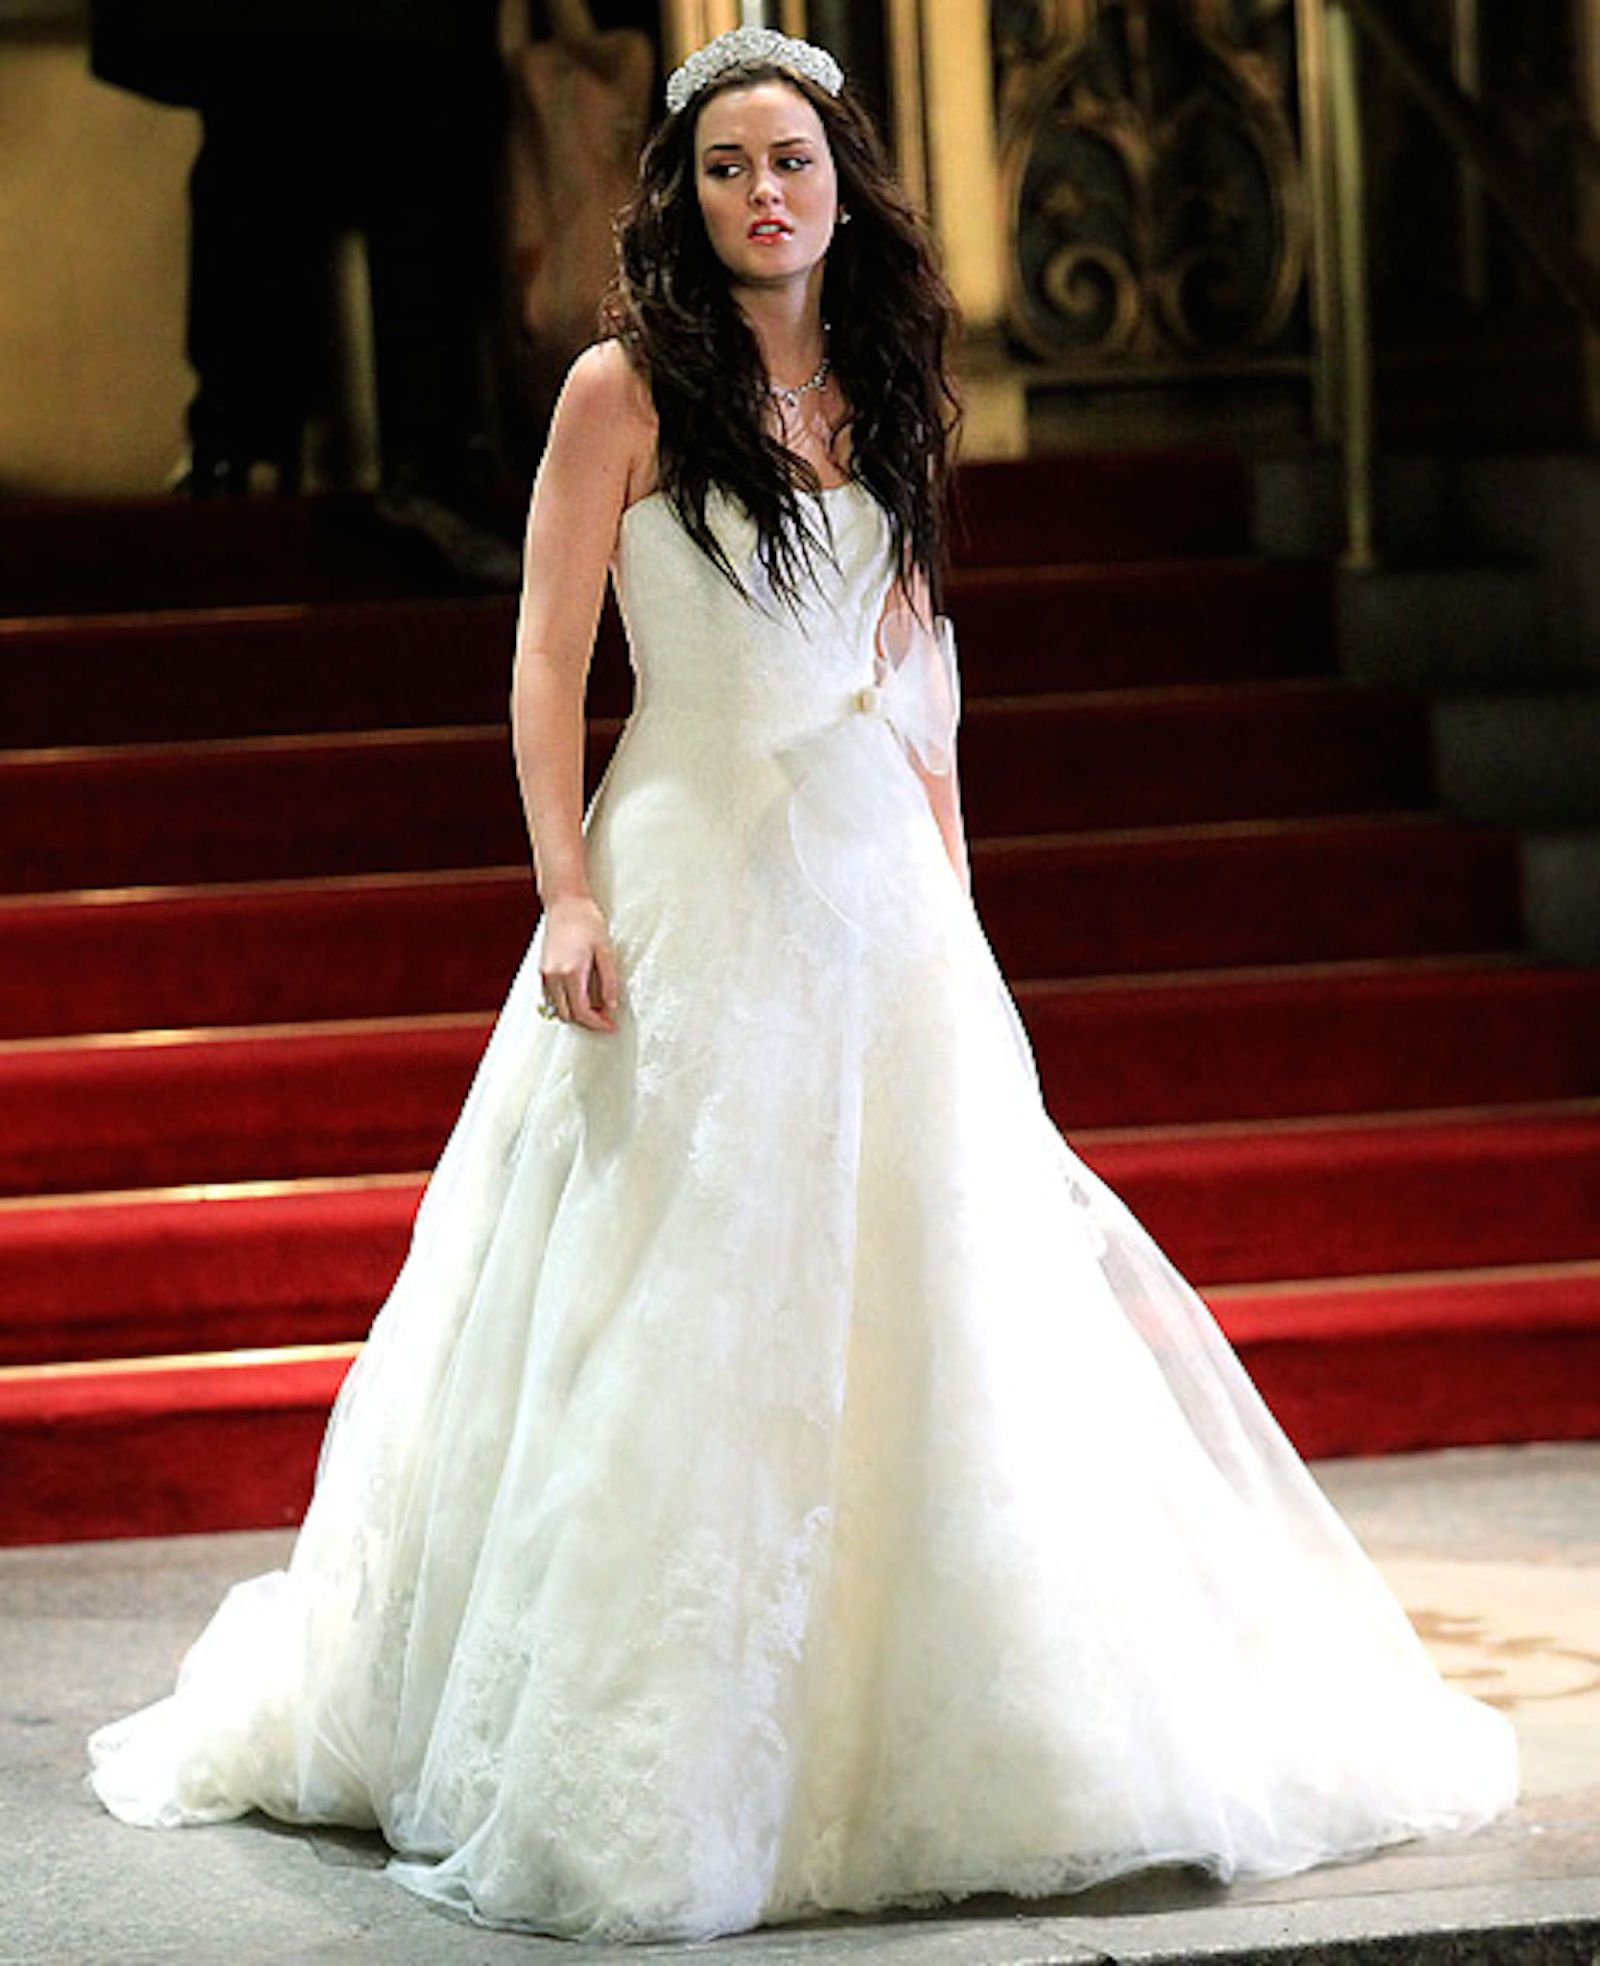 10 Ugliest Wedding Dresses in TV and Movies